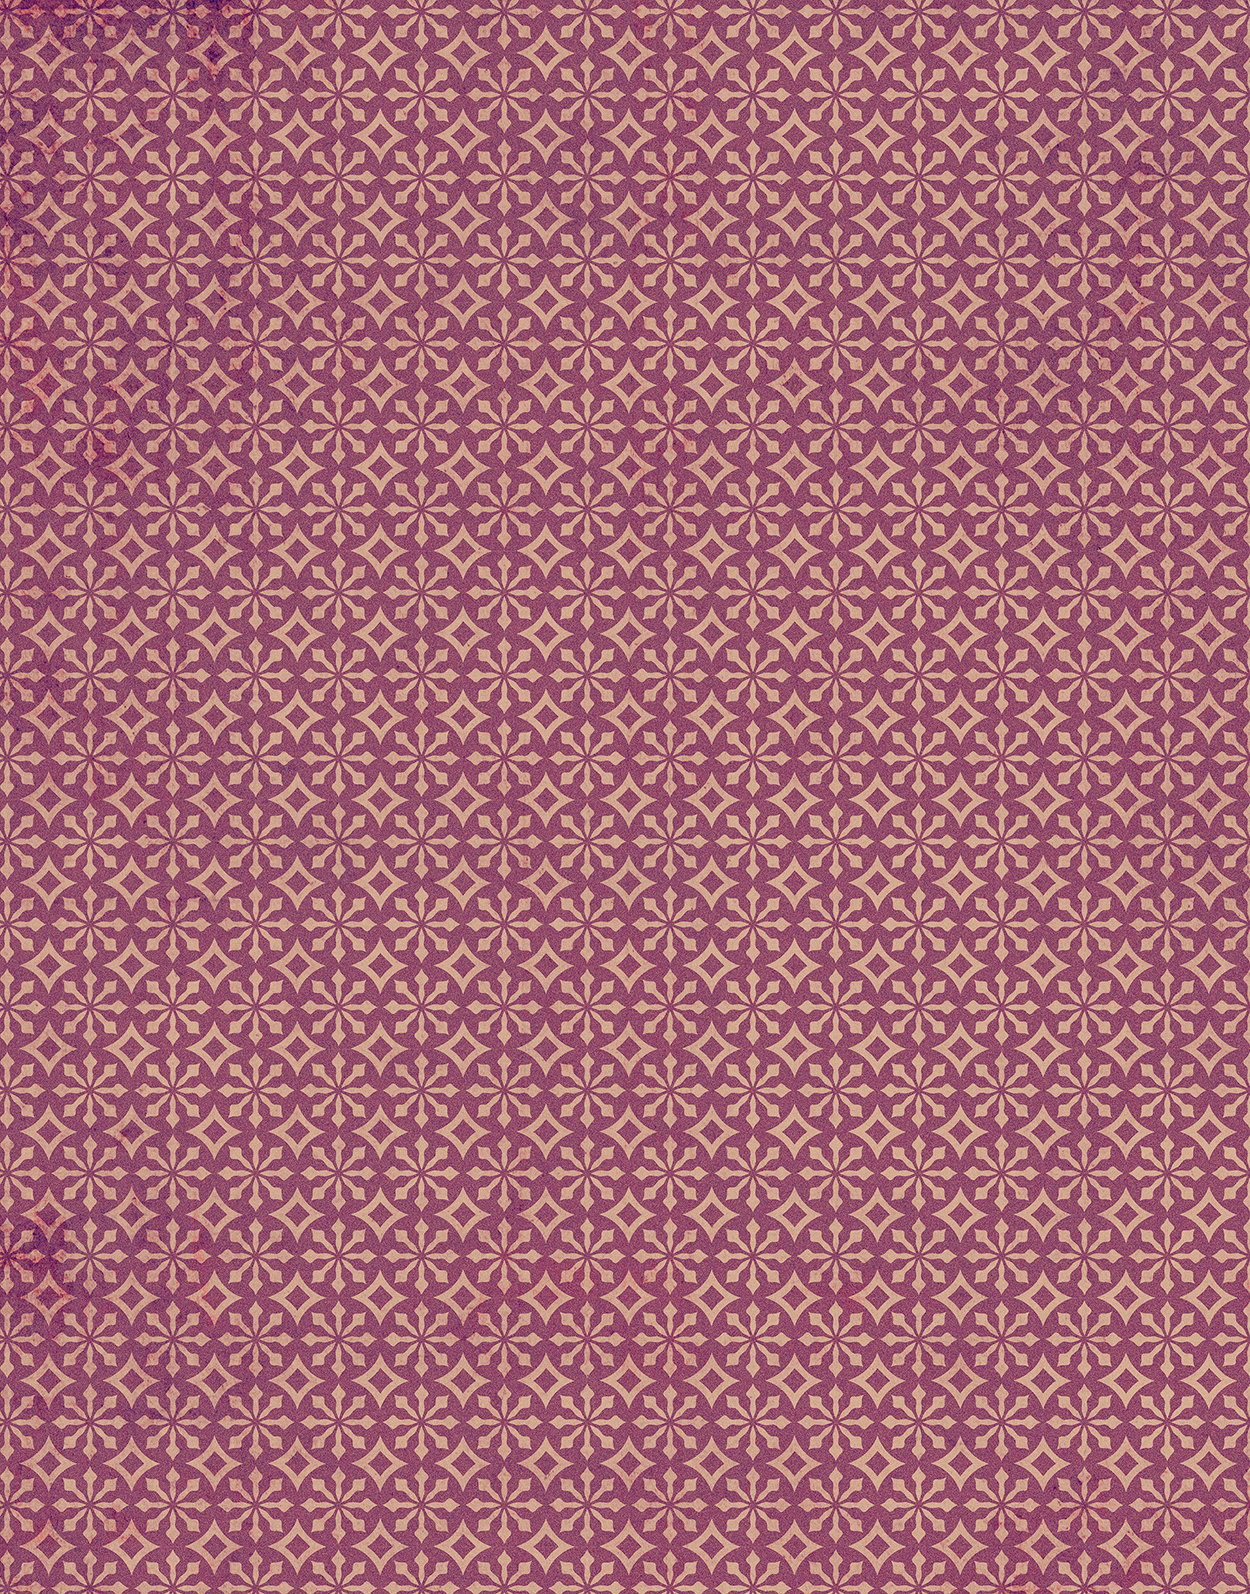 French wallpaper pattern